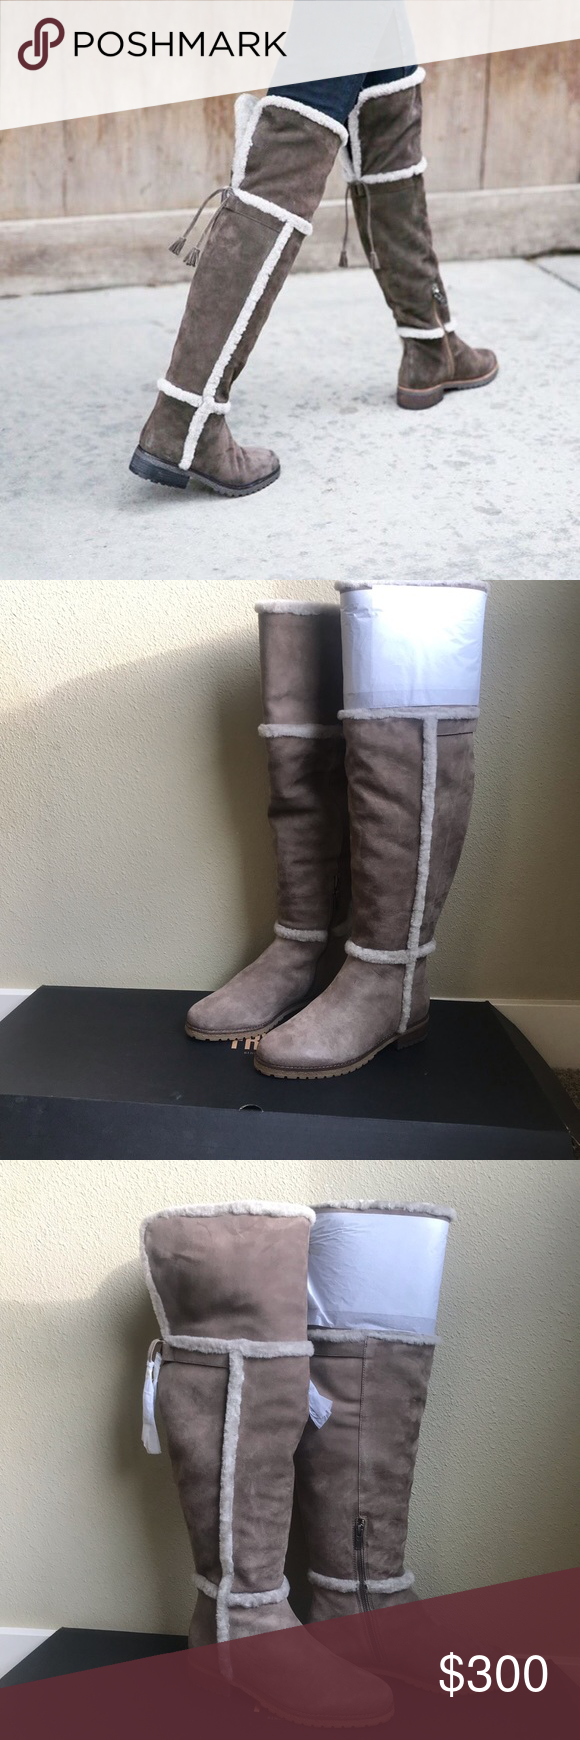 3fcd5f03dc0 NIB Frye Tamara shearling fur lined over the knee New with all original  wrapping and box